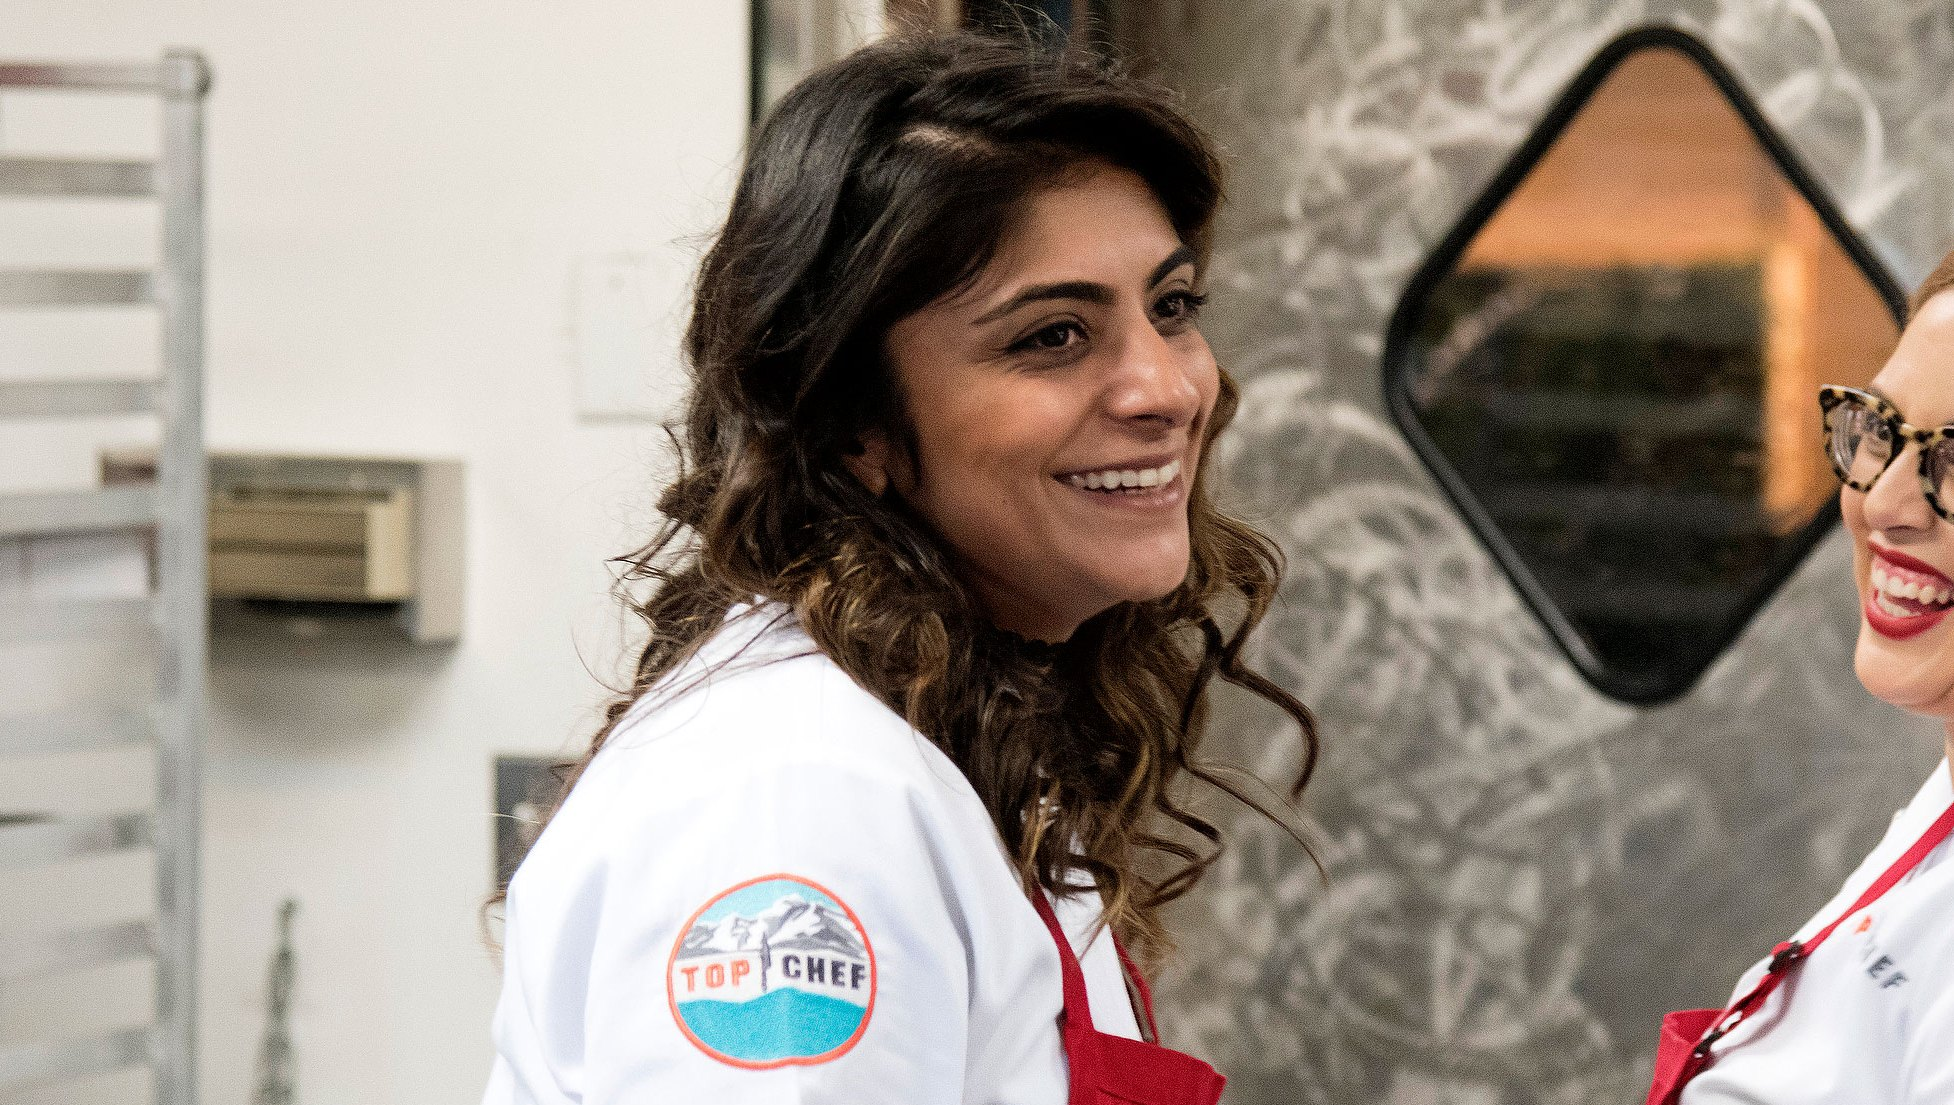 'Top Chef' Season 15 Contestants Reunite for Fatima Ali